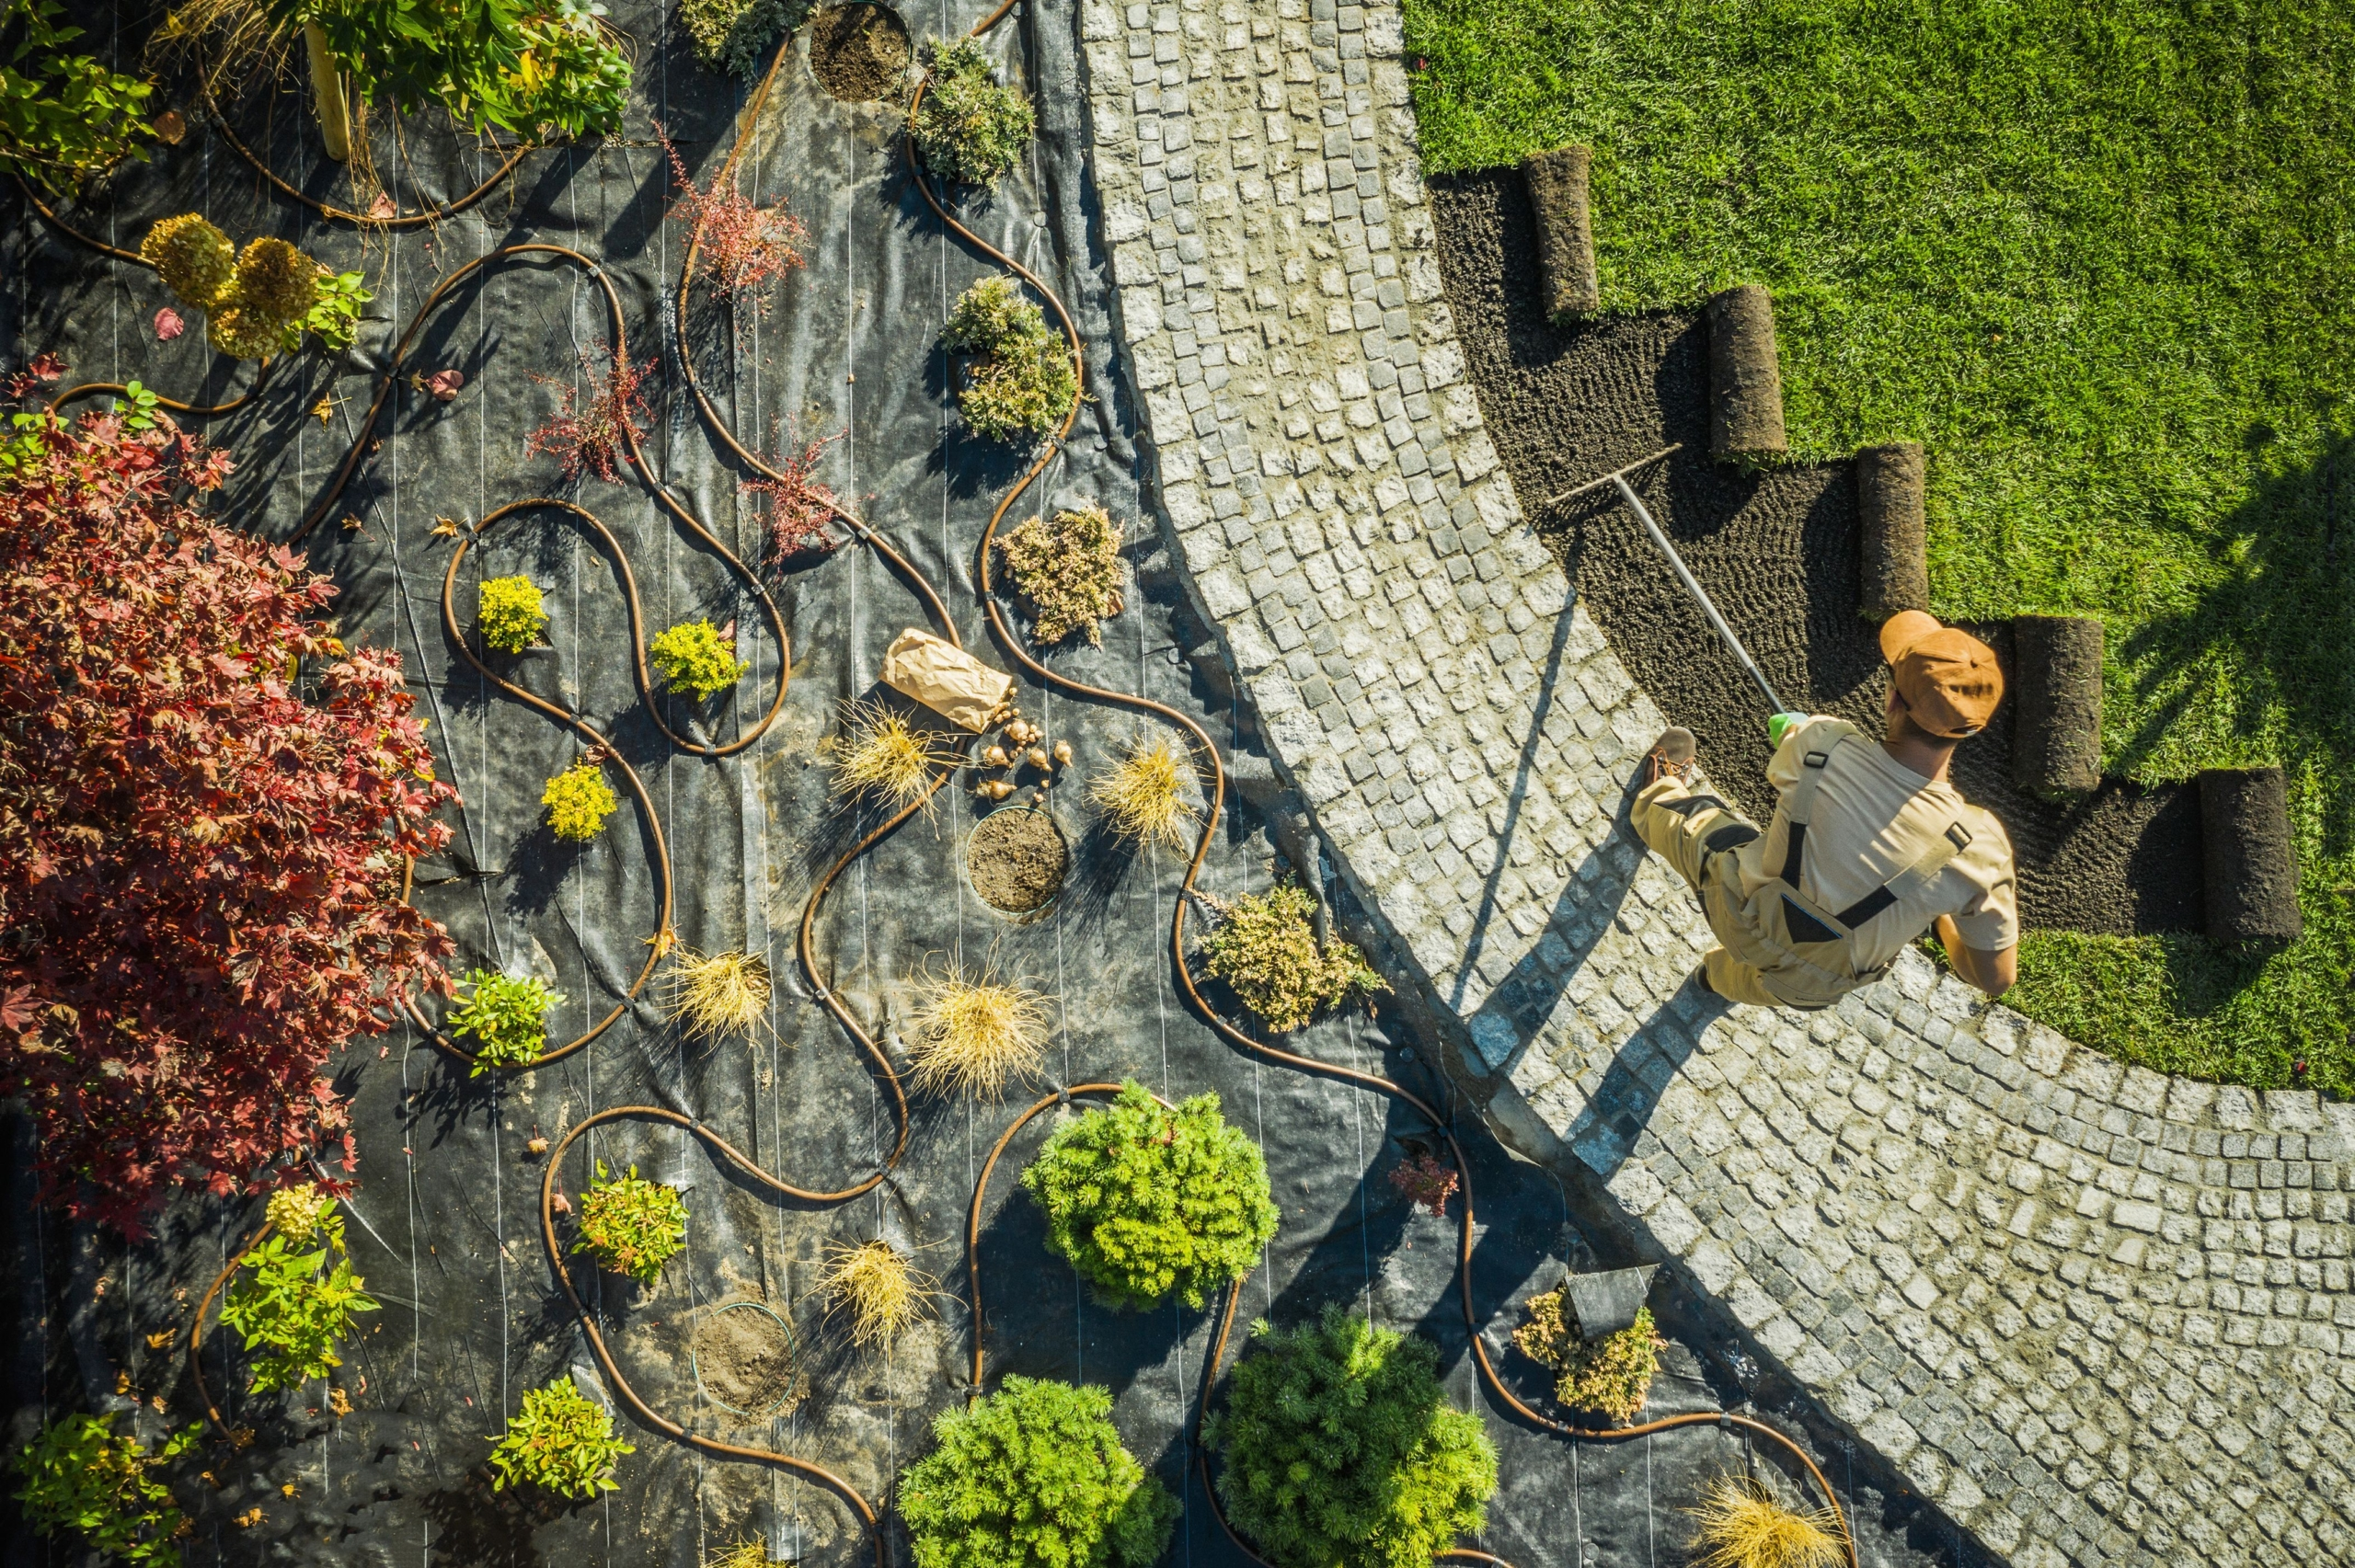 What PPEs are required for landscaping work?